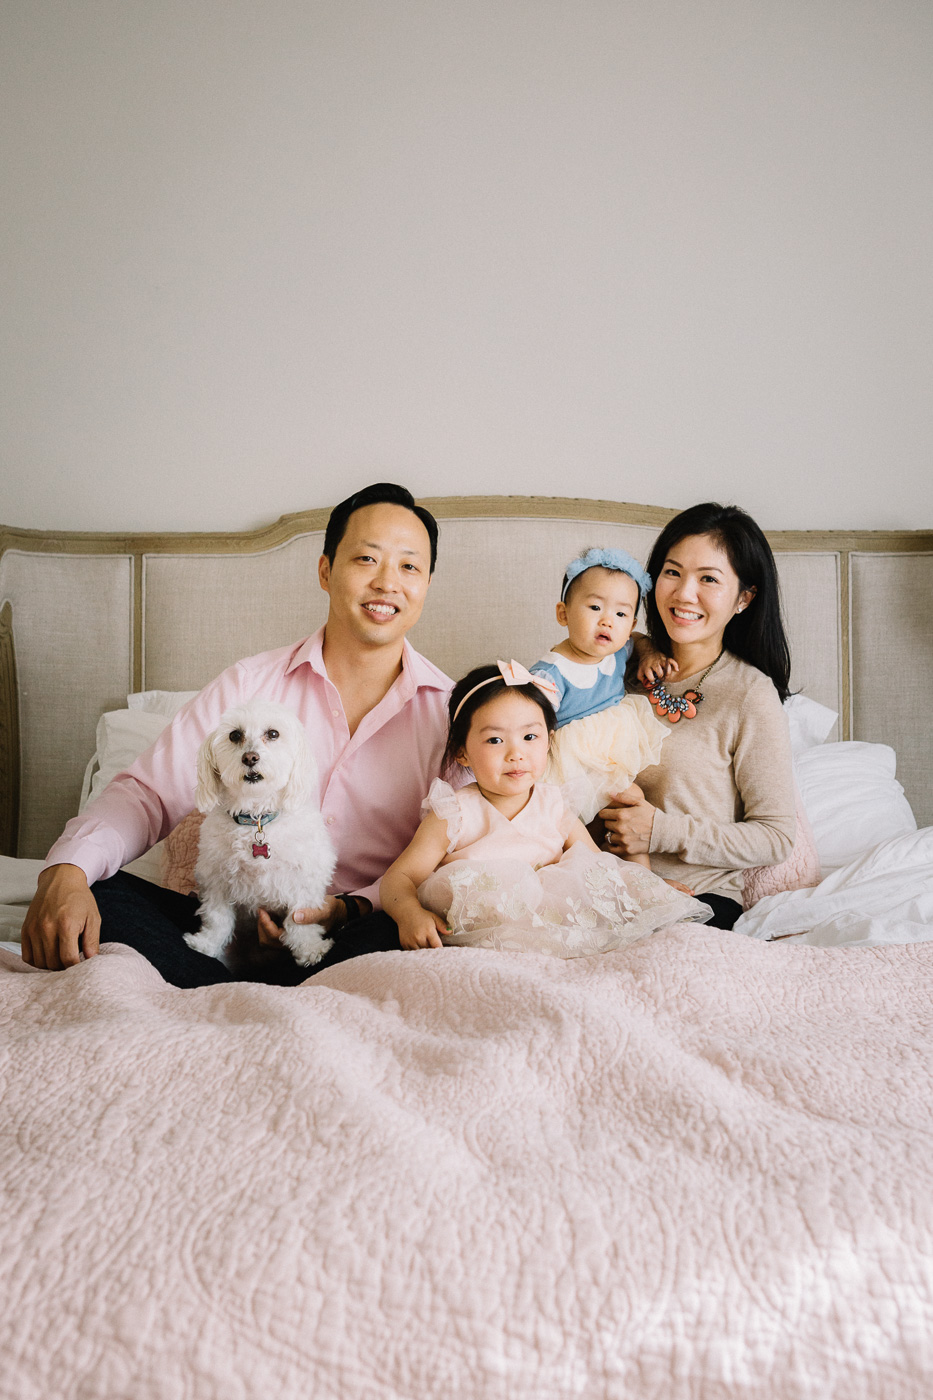 Authentic-Family-Photography-Connection-Childhood-Lifestyle-Phot